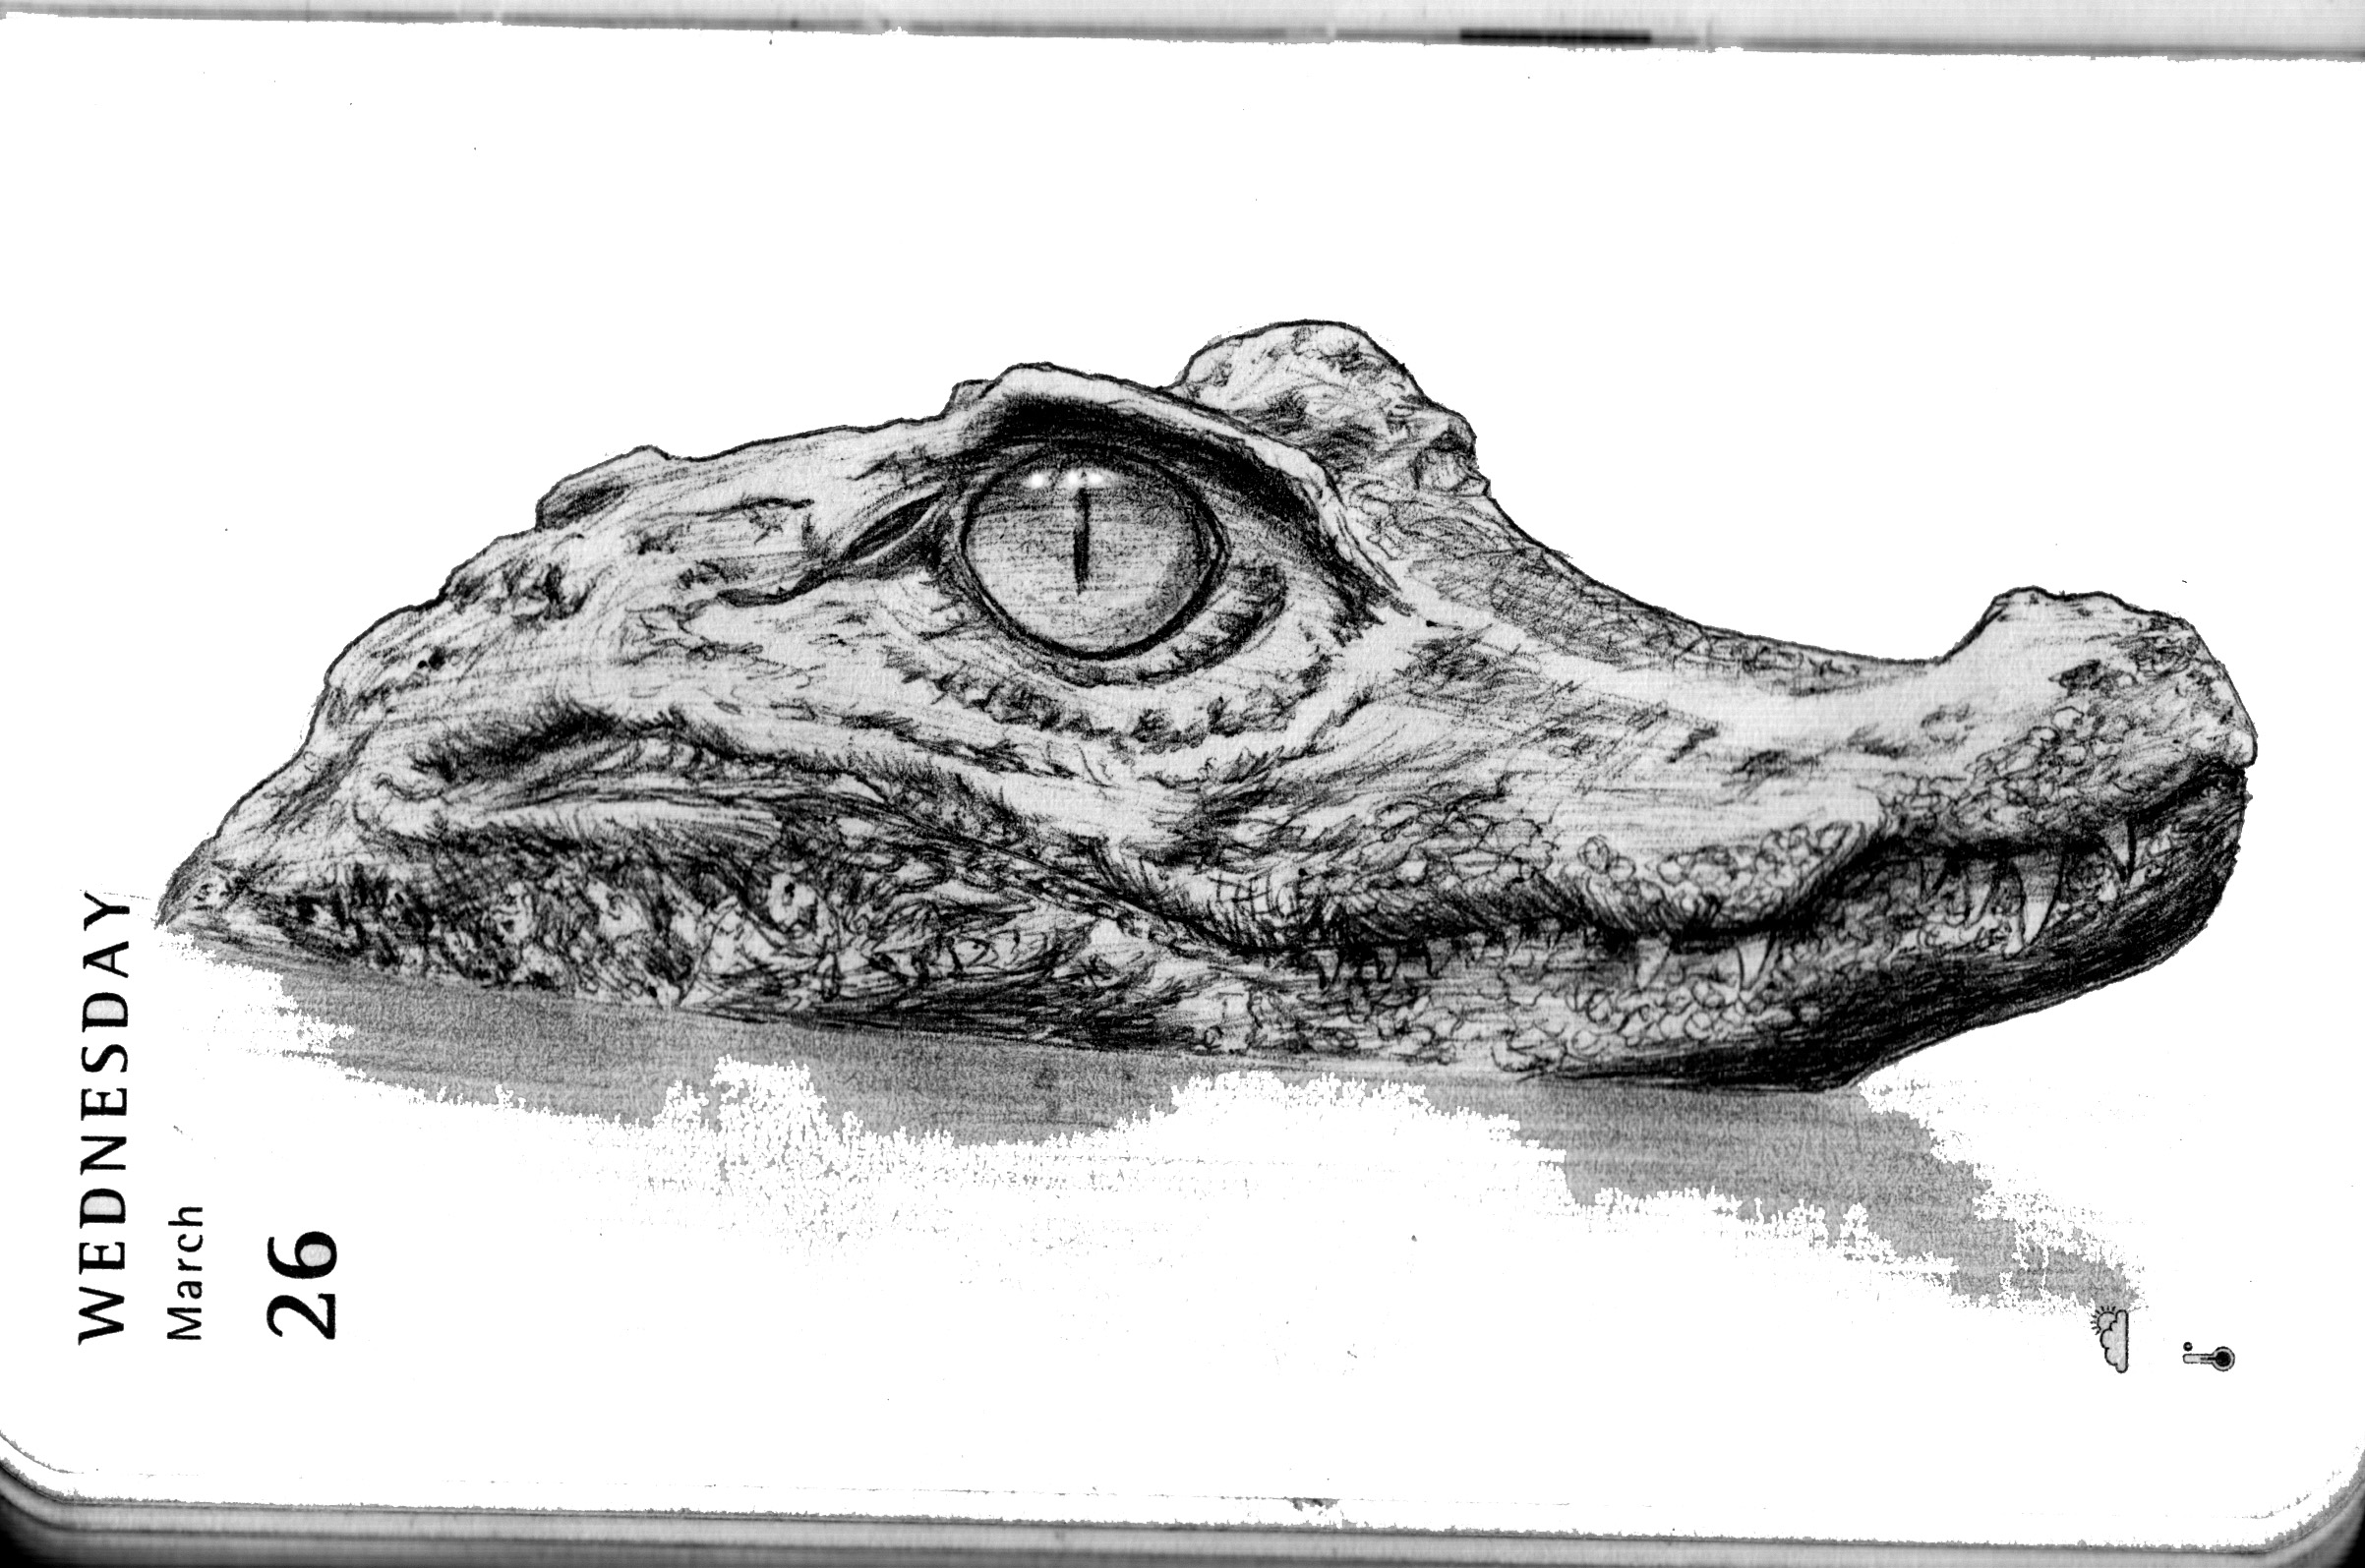 alligator drawing sketchy alligator vector illustration royalty free stock alligator drawing